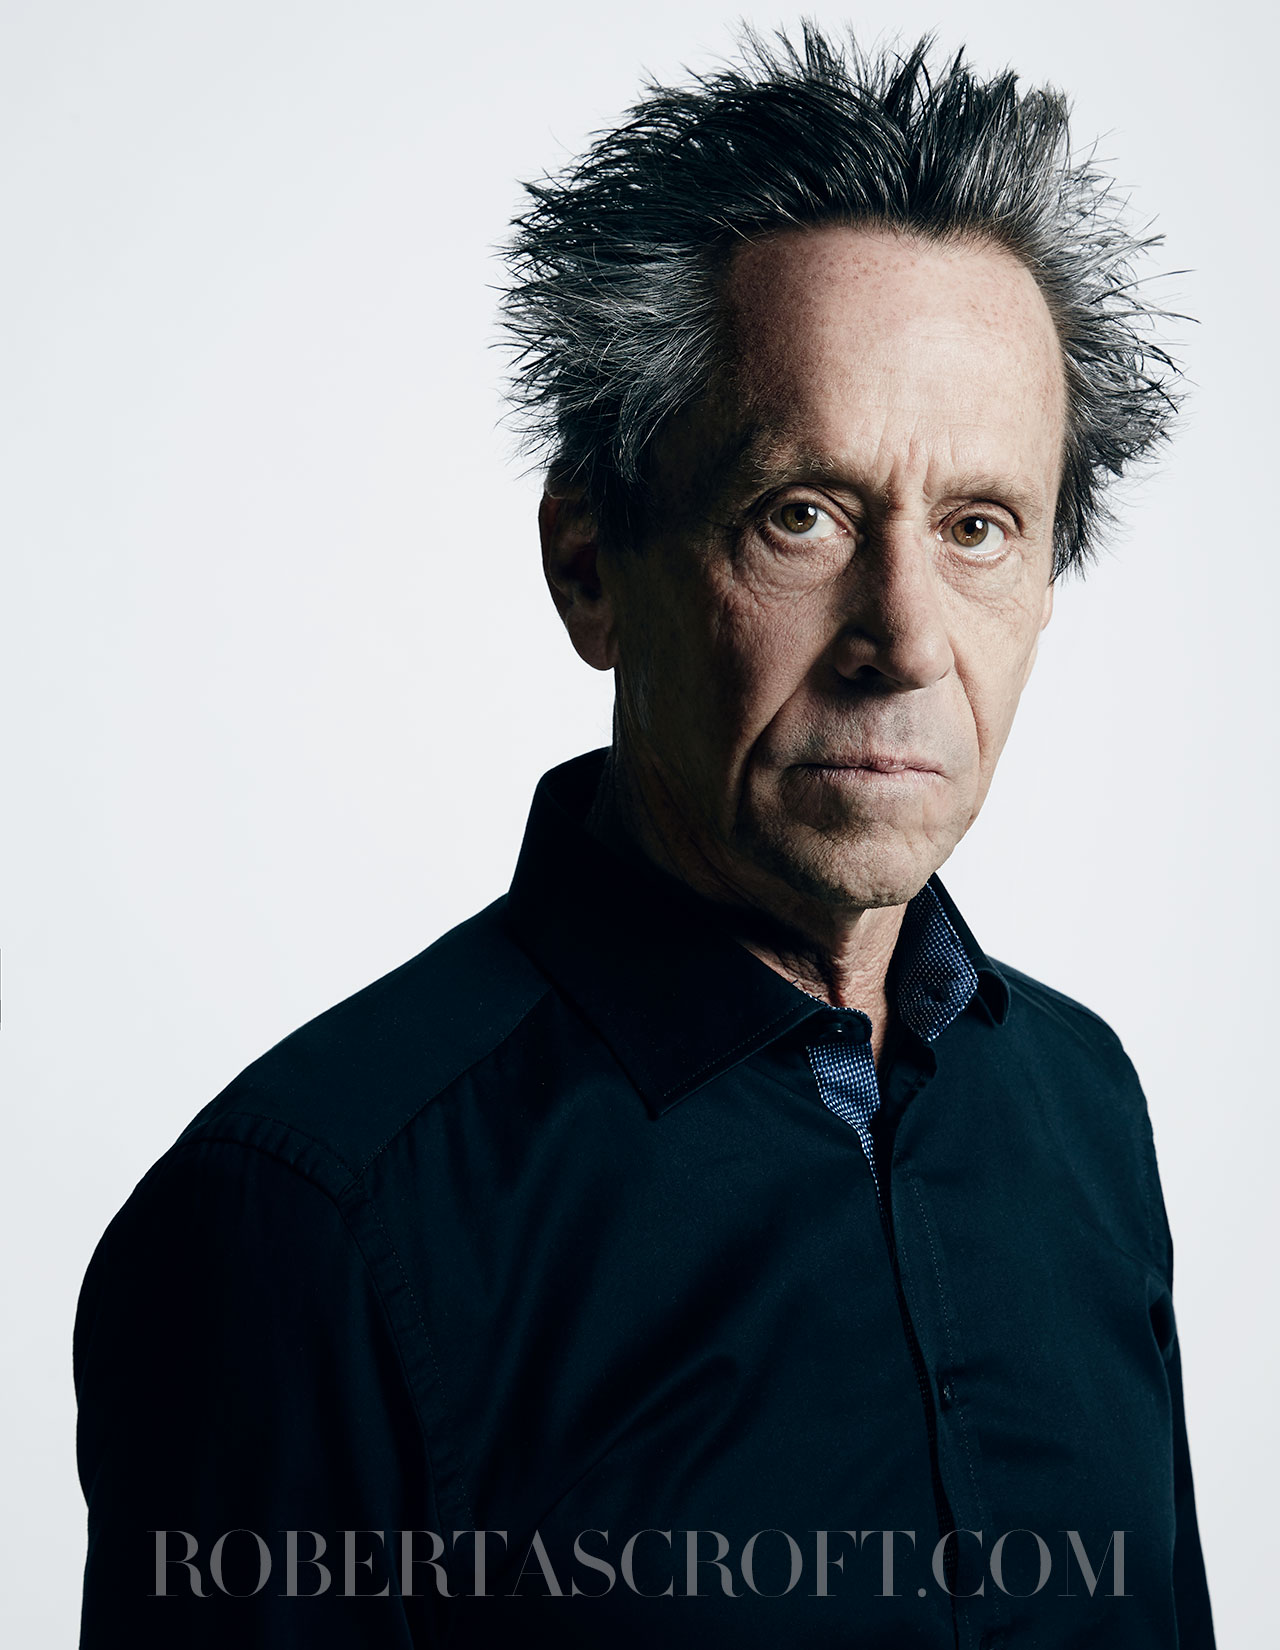 Brian-Grazer-by-Robert-ascroft-01